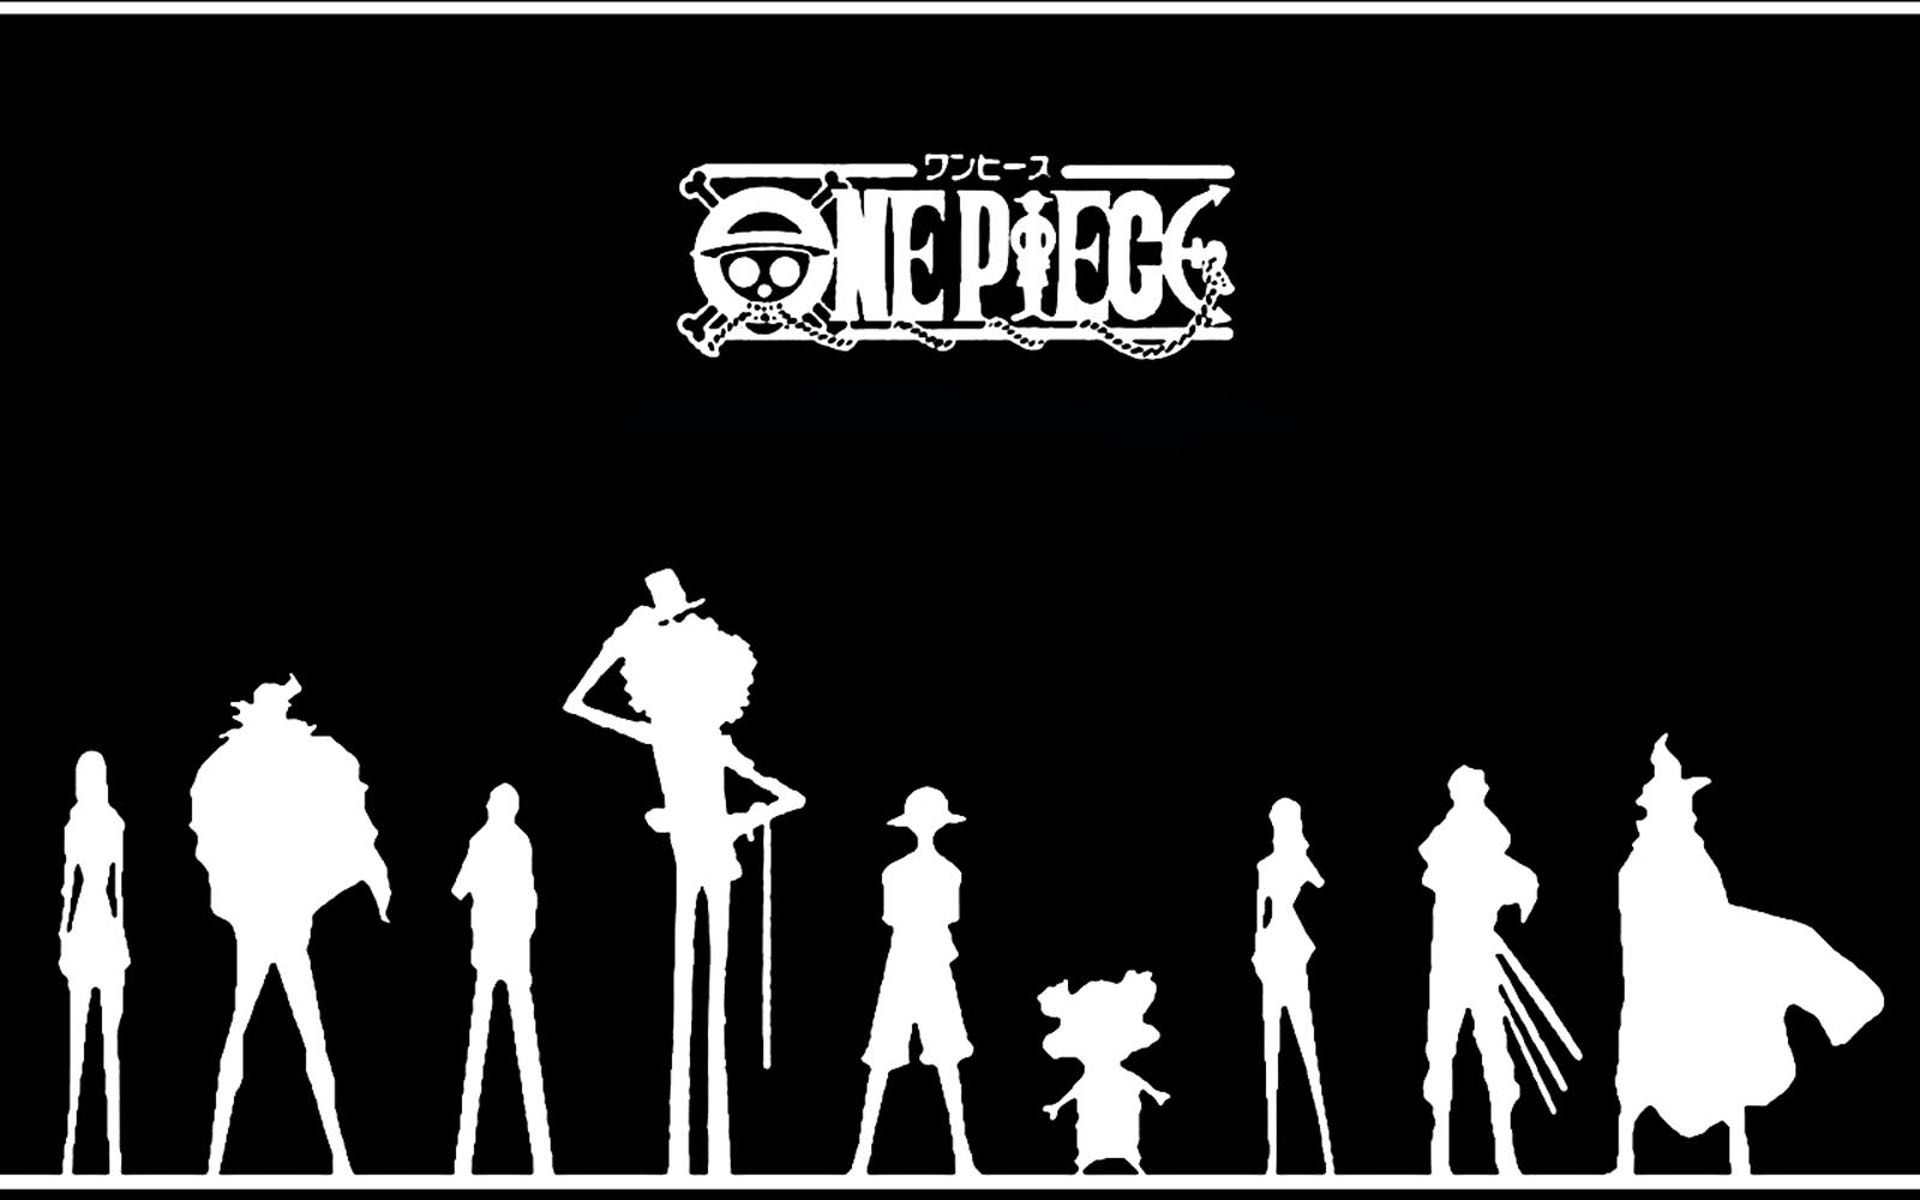 One Piece Wallpaper Black 114991 1920x1200 Jpg 1920 1200 Siluet Gambar Anime Gambar